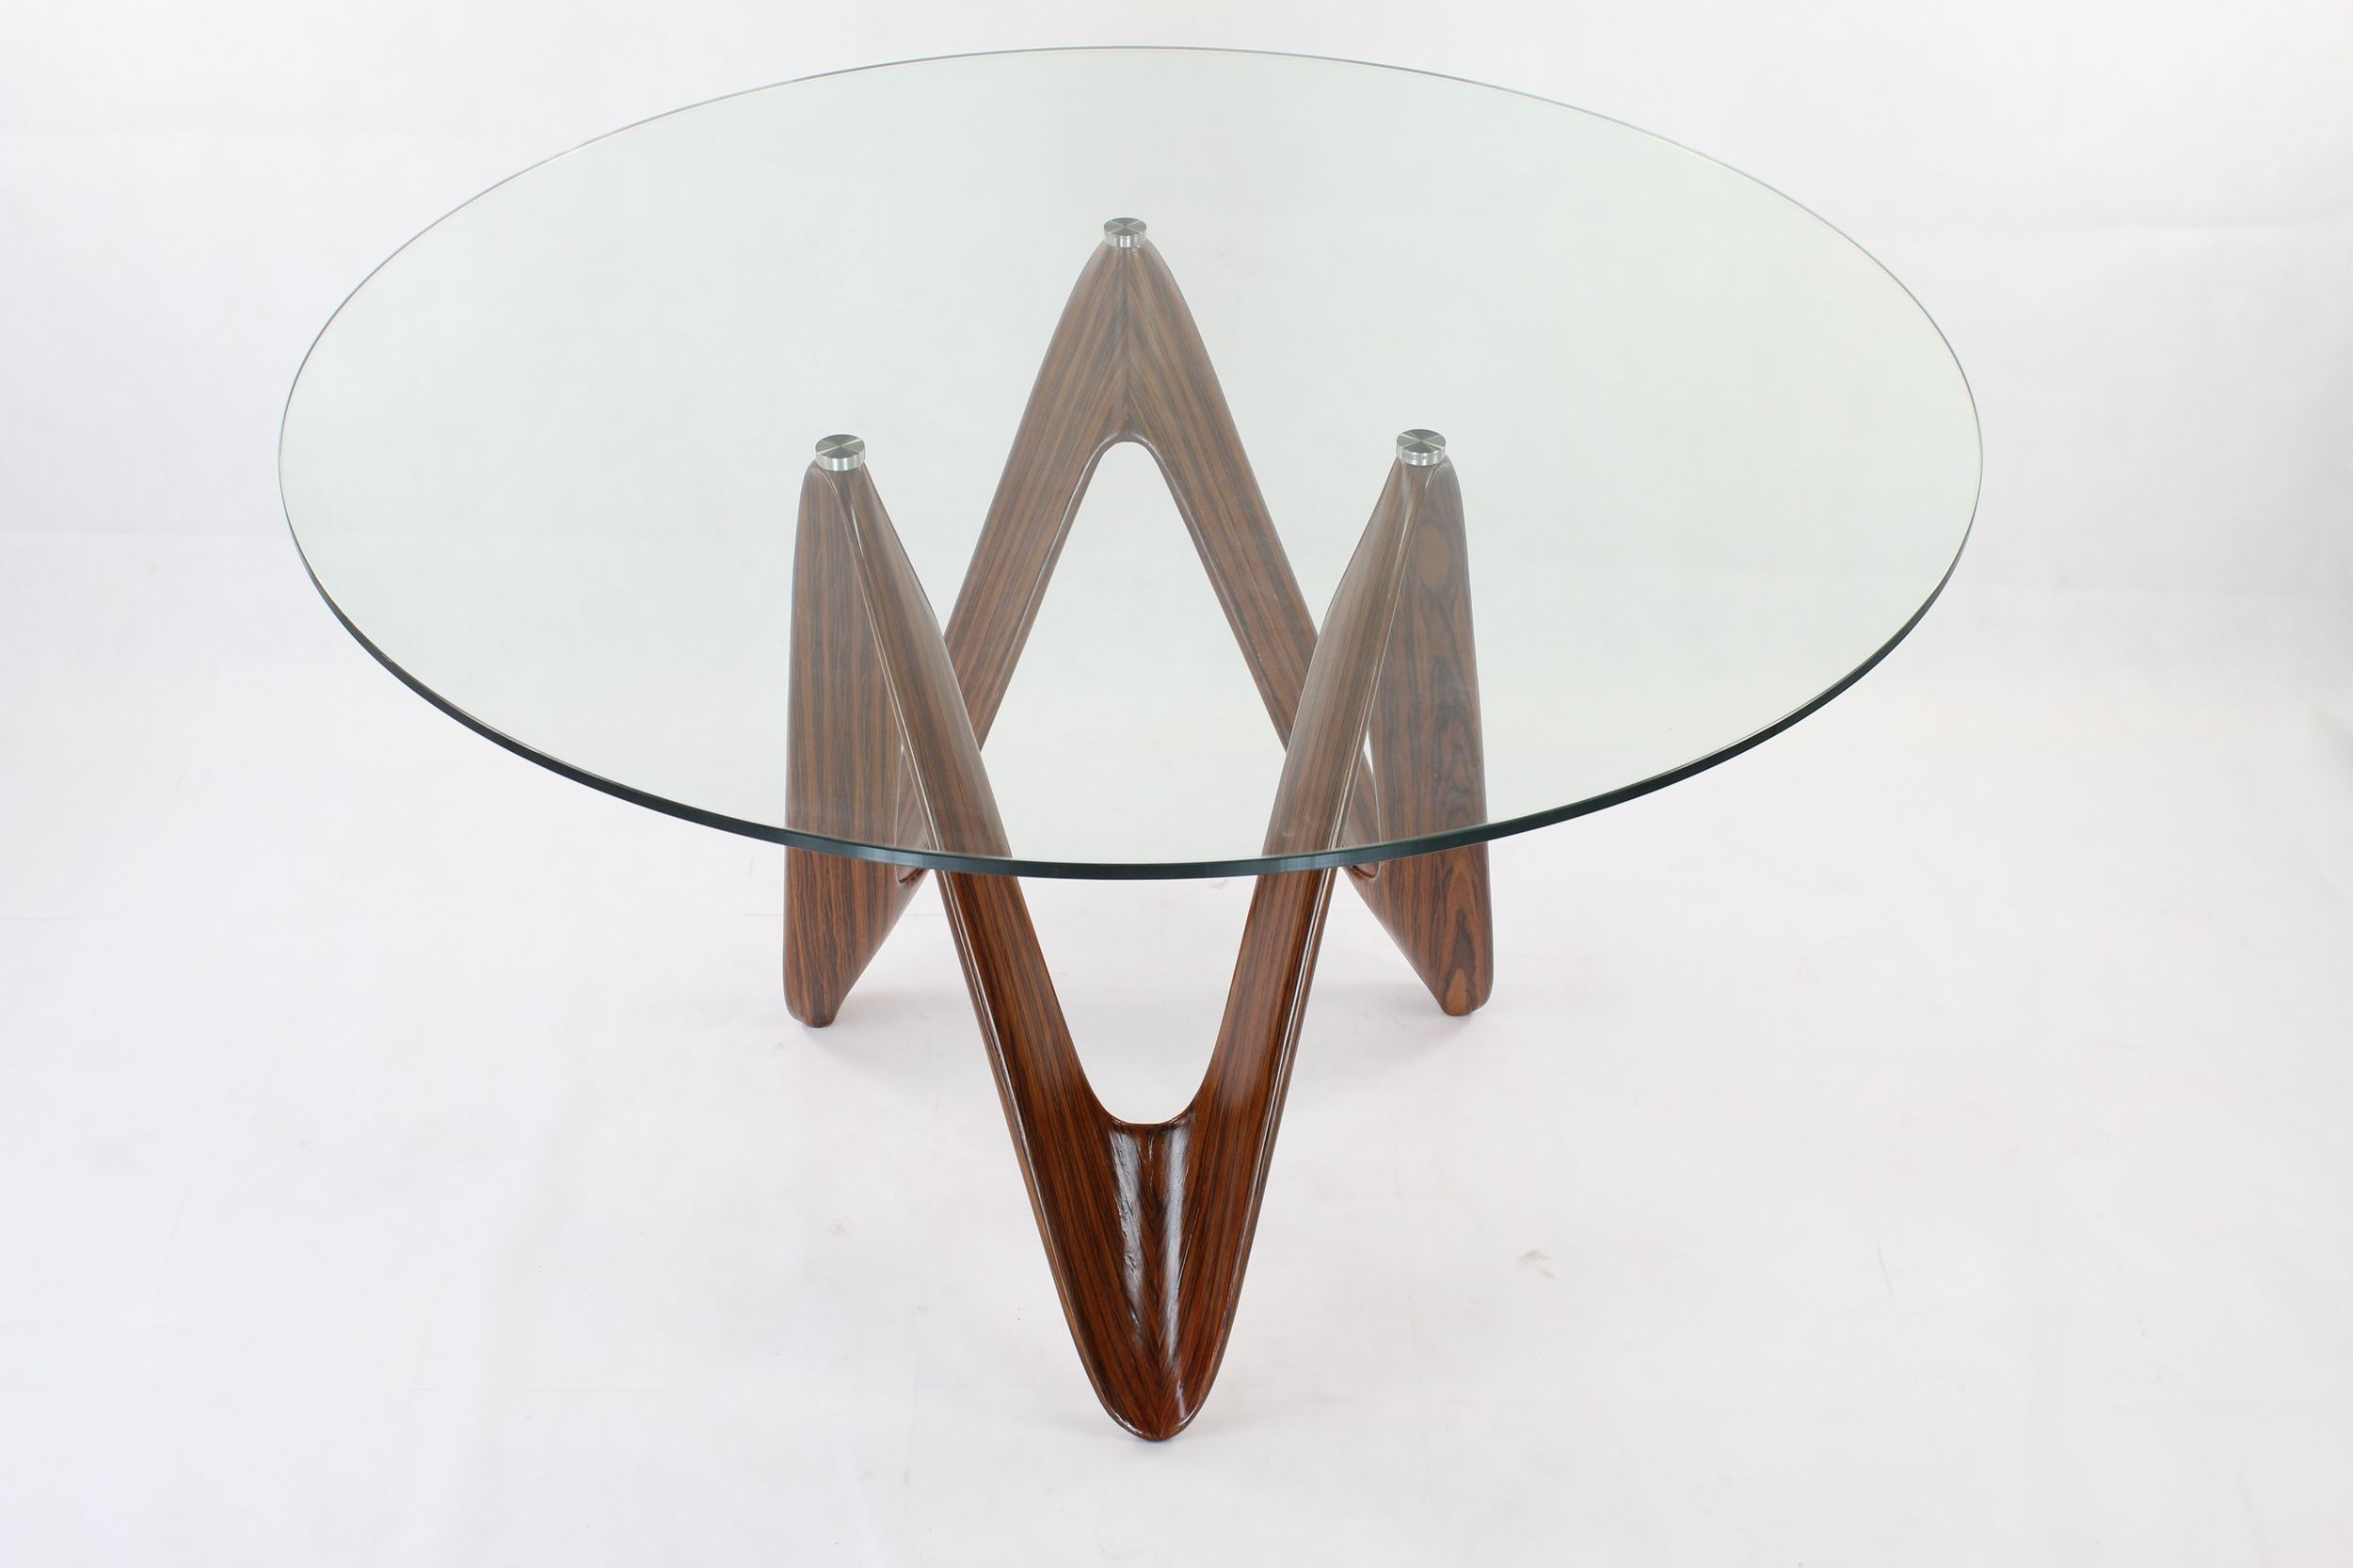 Vespa Round Glass Dining Table With Walnut Base Round Glass Dining Room Table Glass Round Dining Table Glass Dining Room Table [ 1666 x 2500 Pixel ]